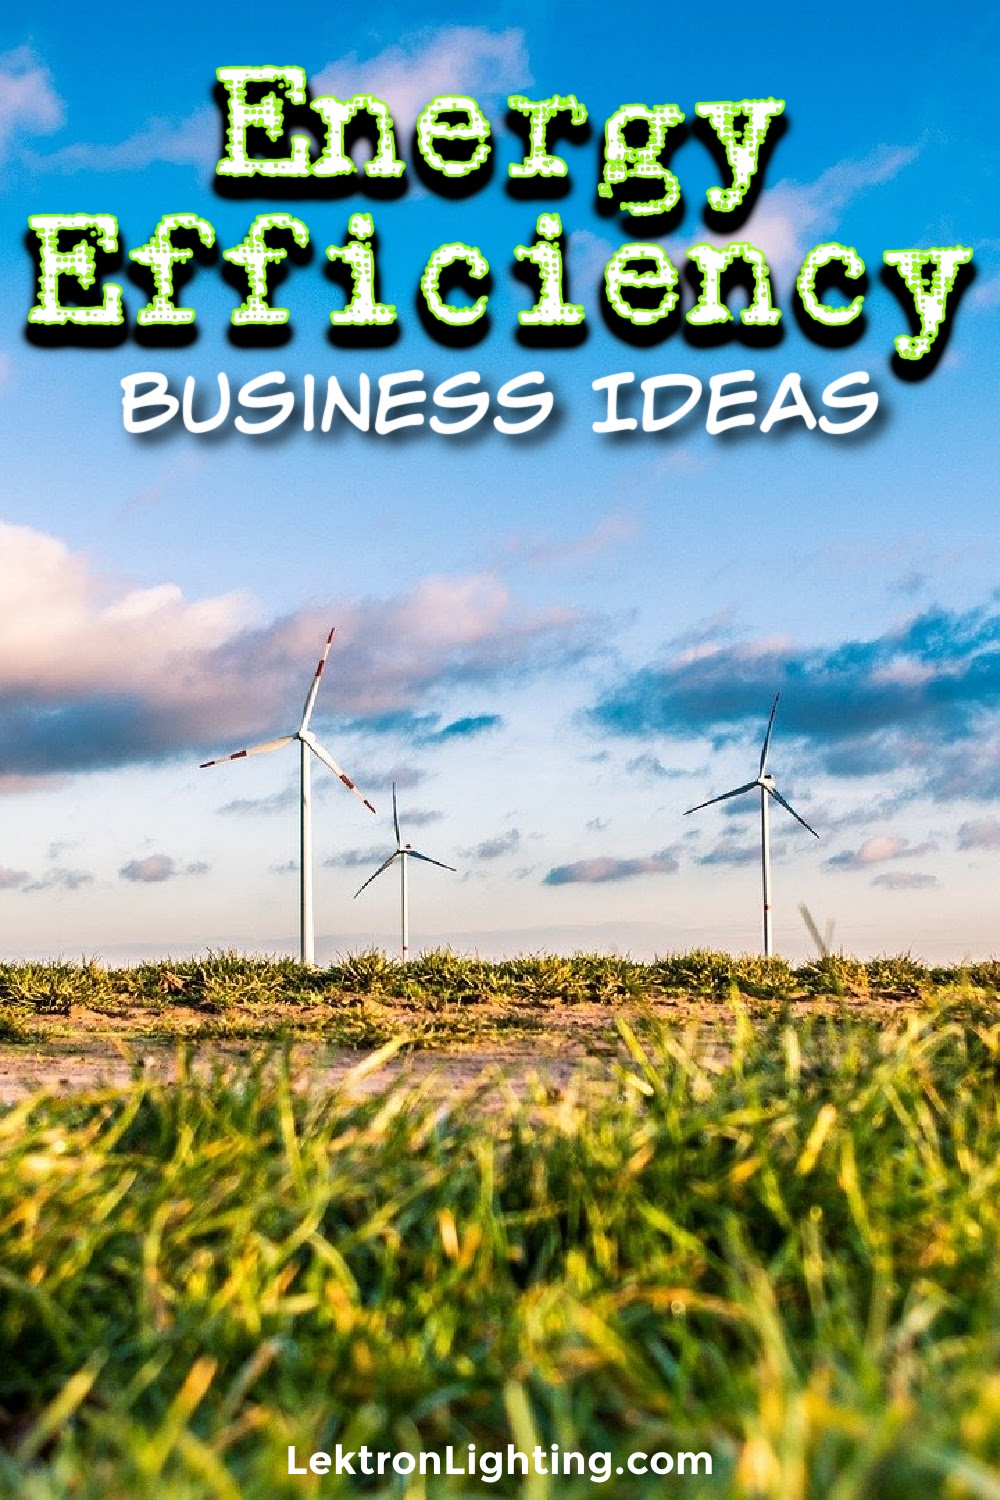 Decreasing overhead costs is as simple as utilizing business energy efficiency ideas that can easily be implemented starting today.